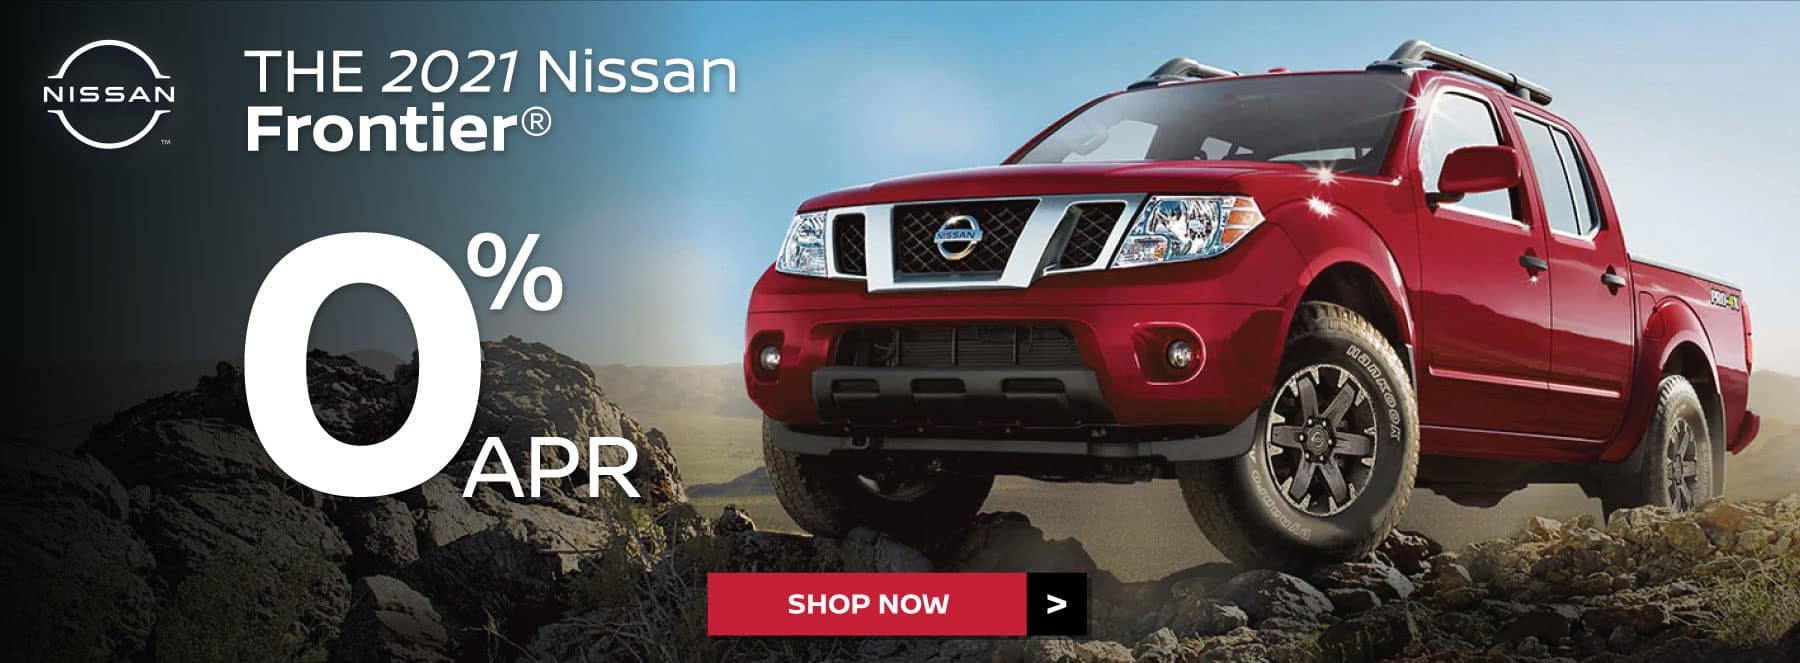 0 % APR on 2021 Nissan Frontier